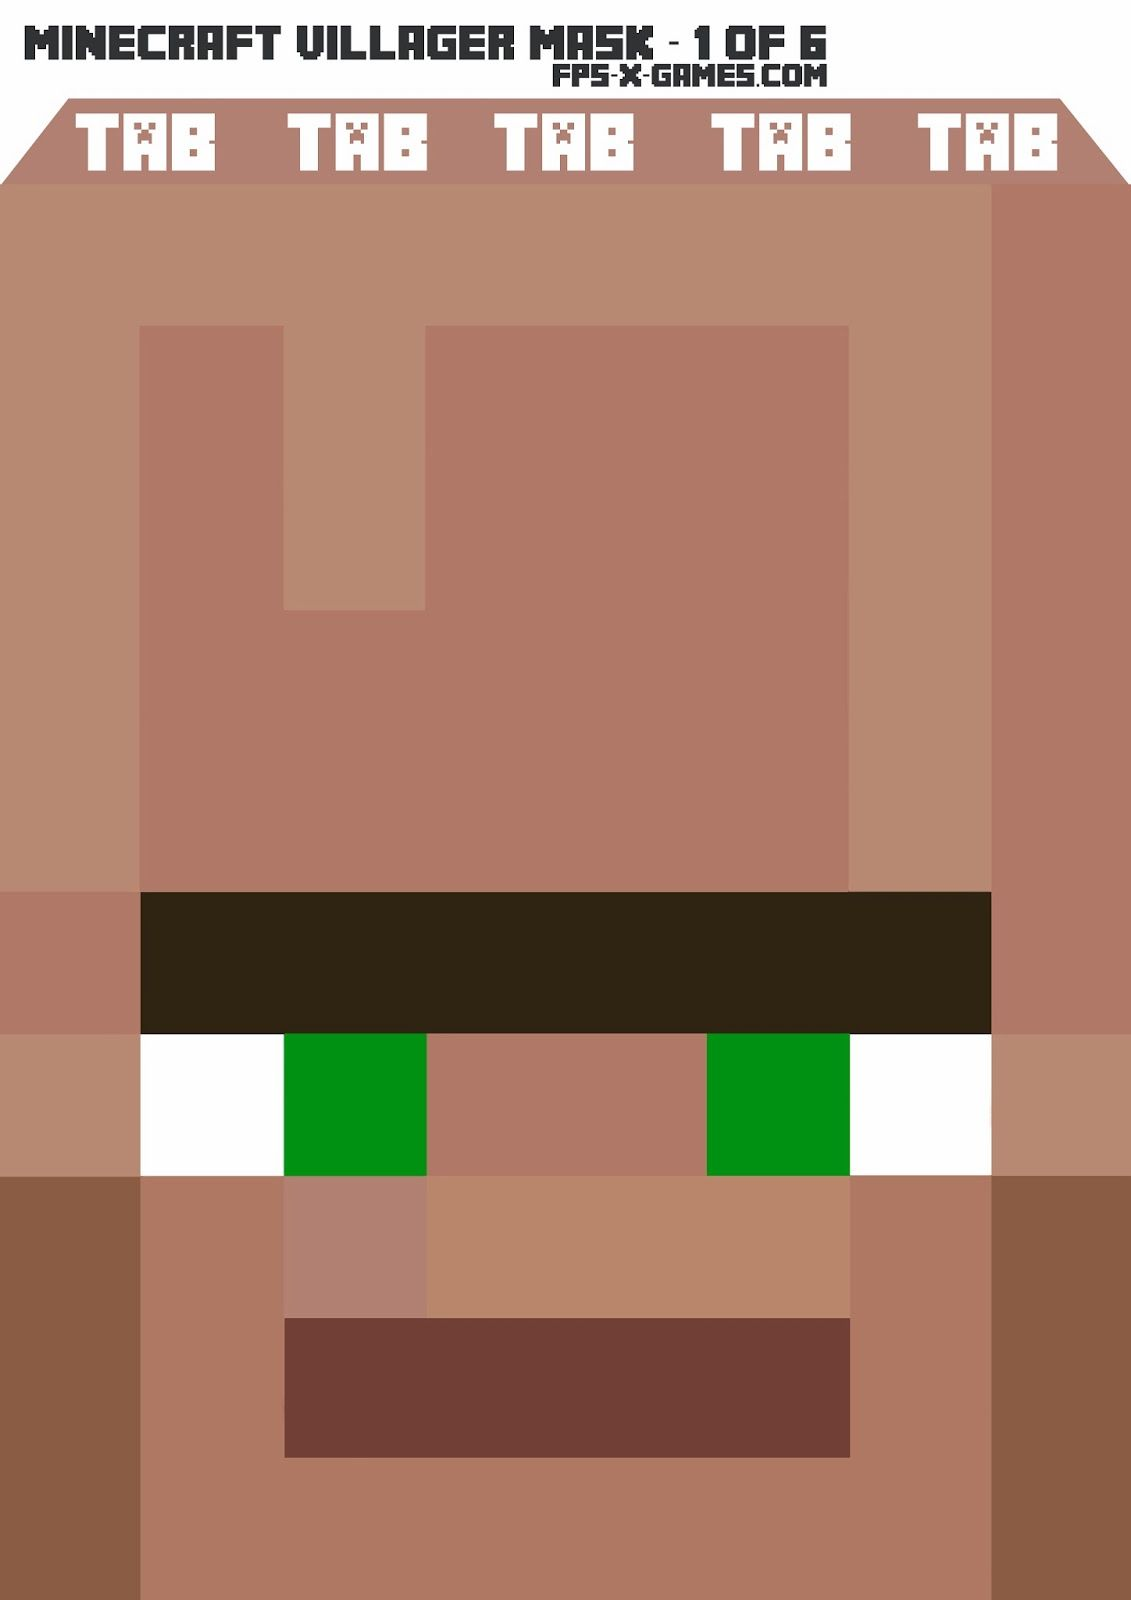 graphic regarding Minecraft Masks Printable titled Printable Minecraft Villager Mask 1 of 6 #minecraft #mask